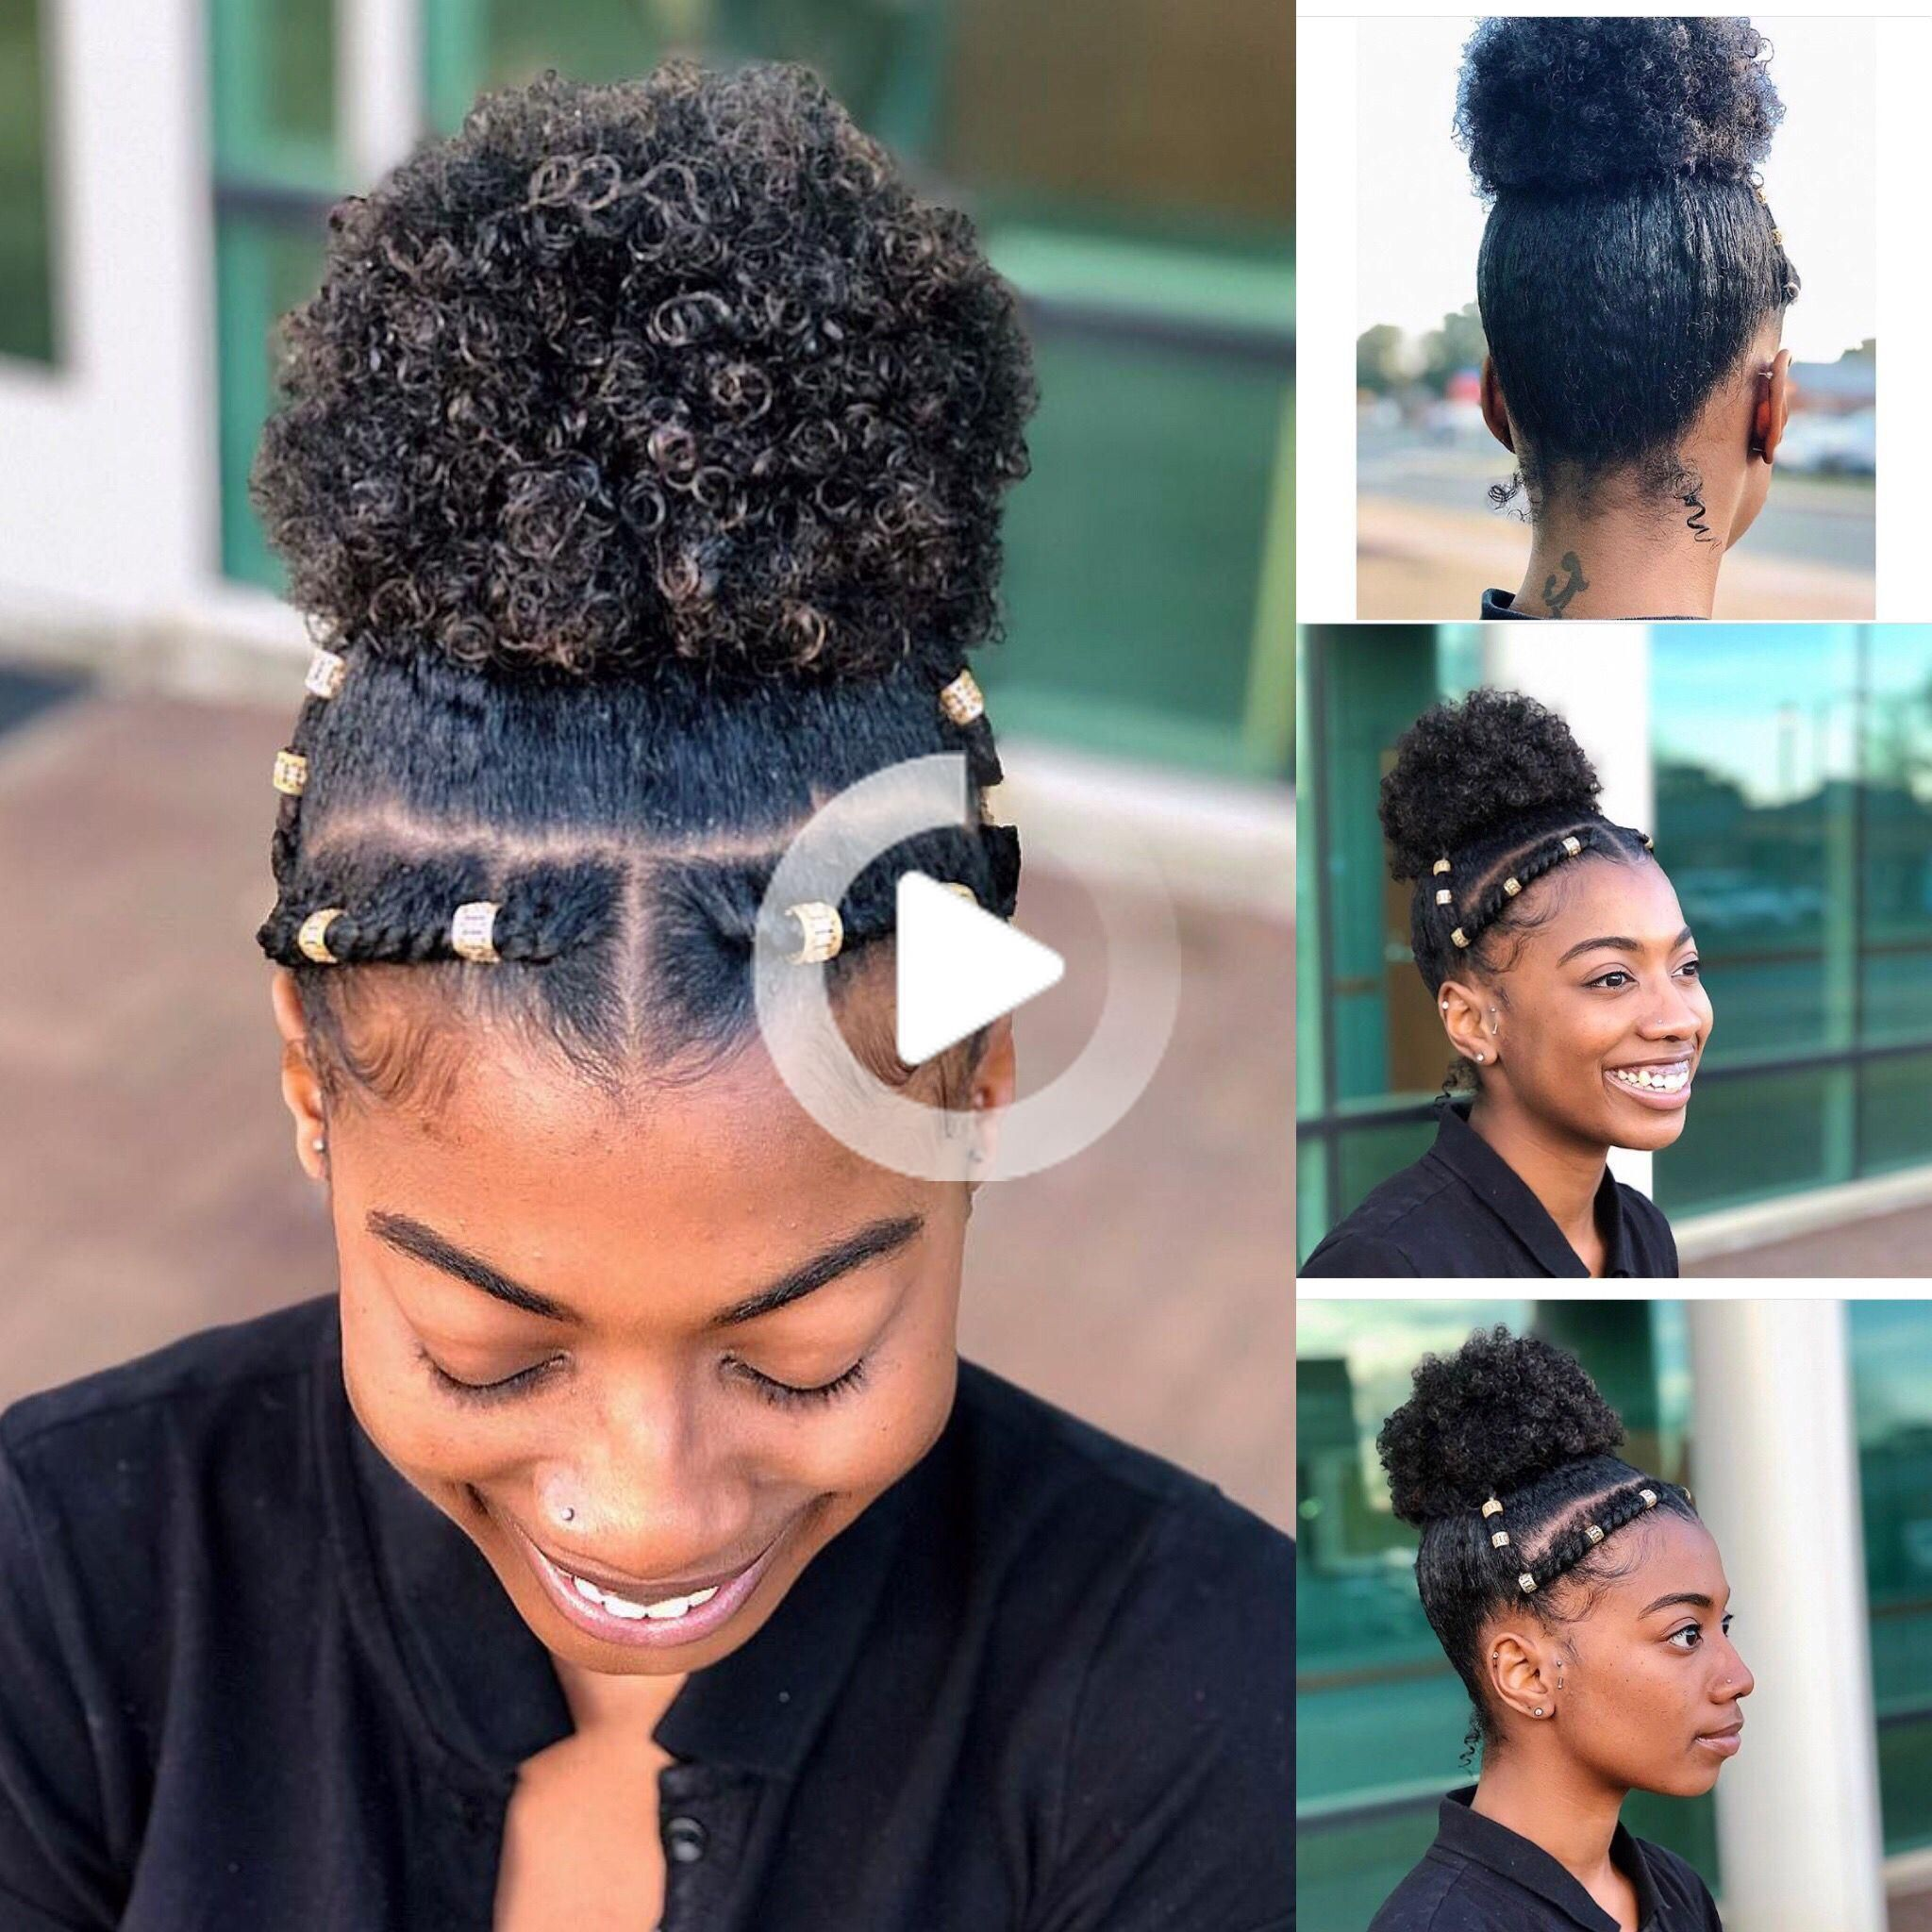 10 Different Hairstyles To Make Your Twist Out Last Longer Coiffure Cheveux Naturels Coiffure Naturelle Idee Coiffure Cheveux Crepus